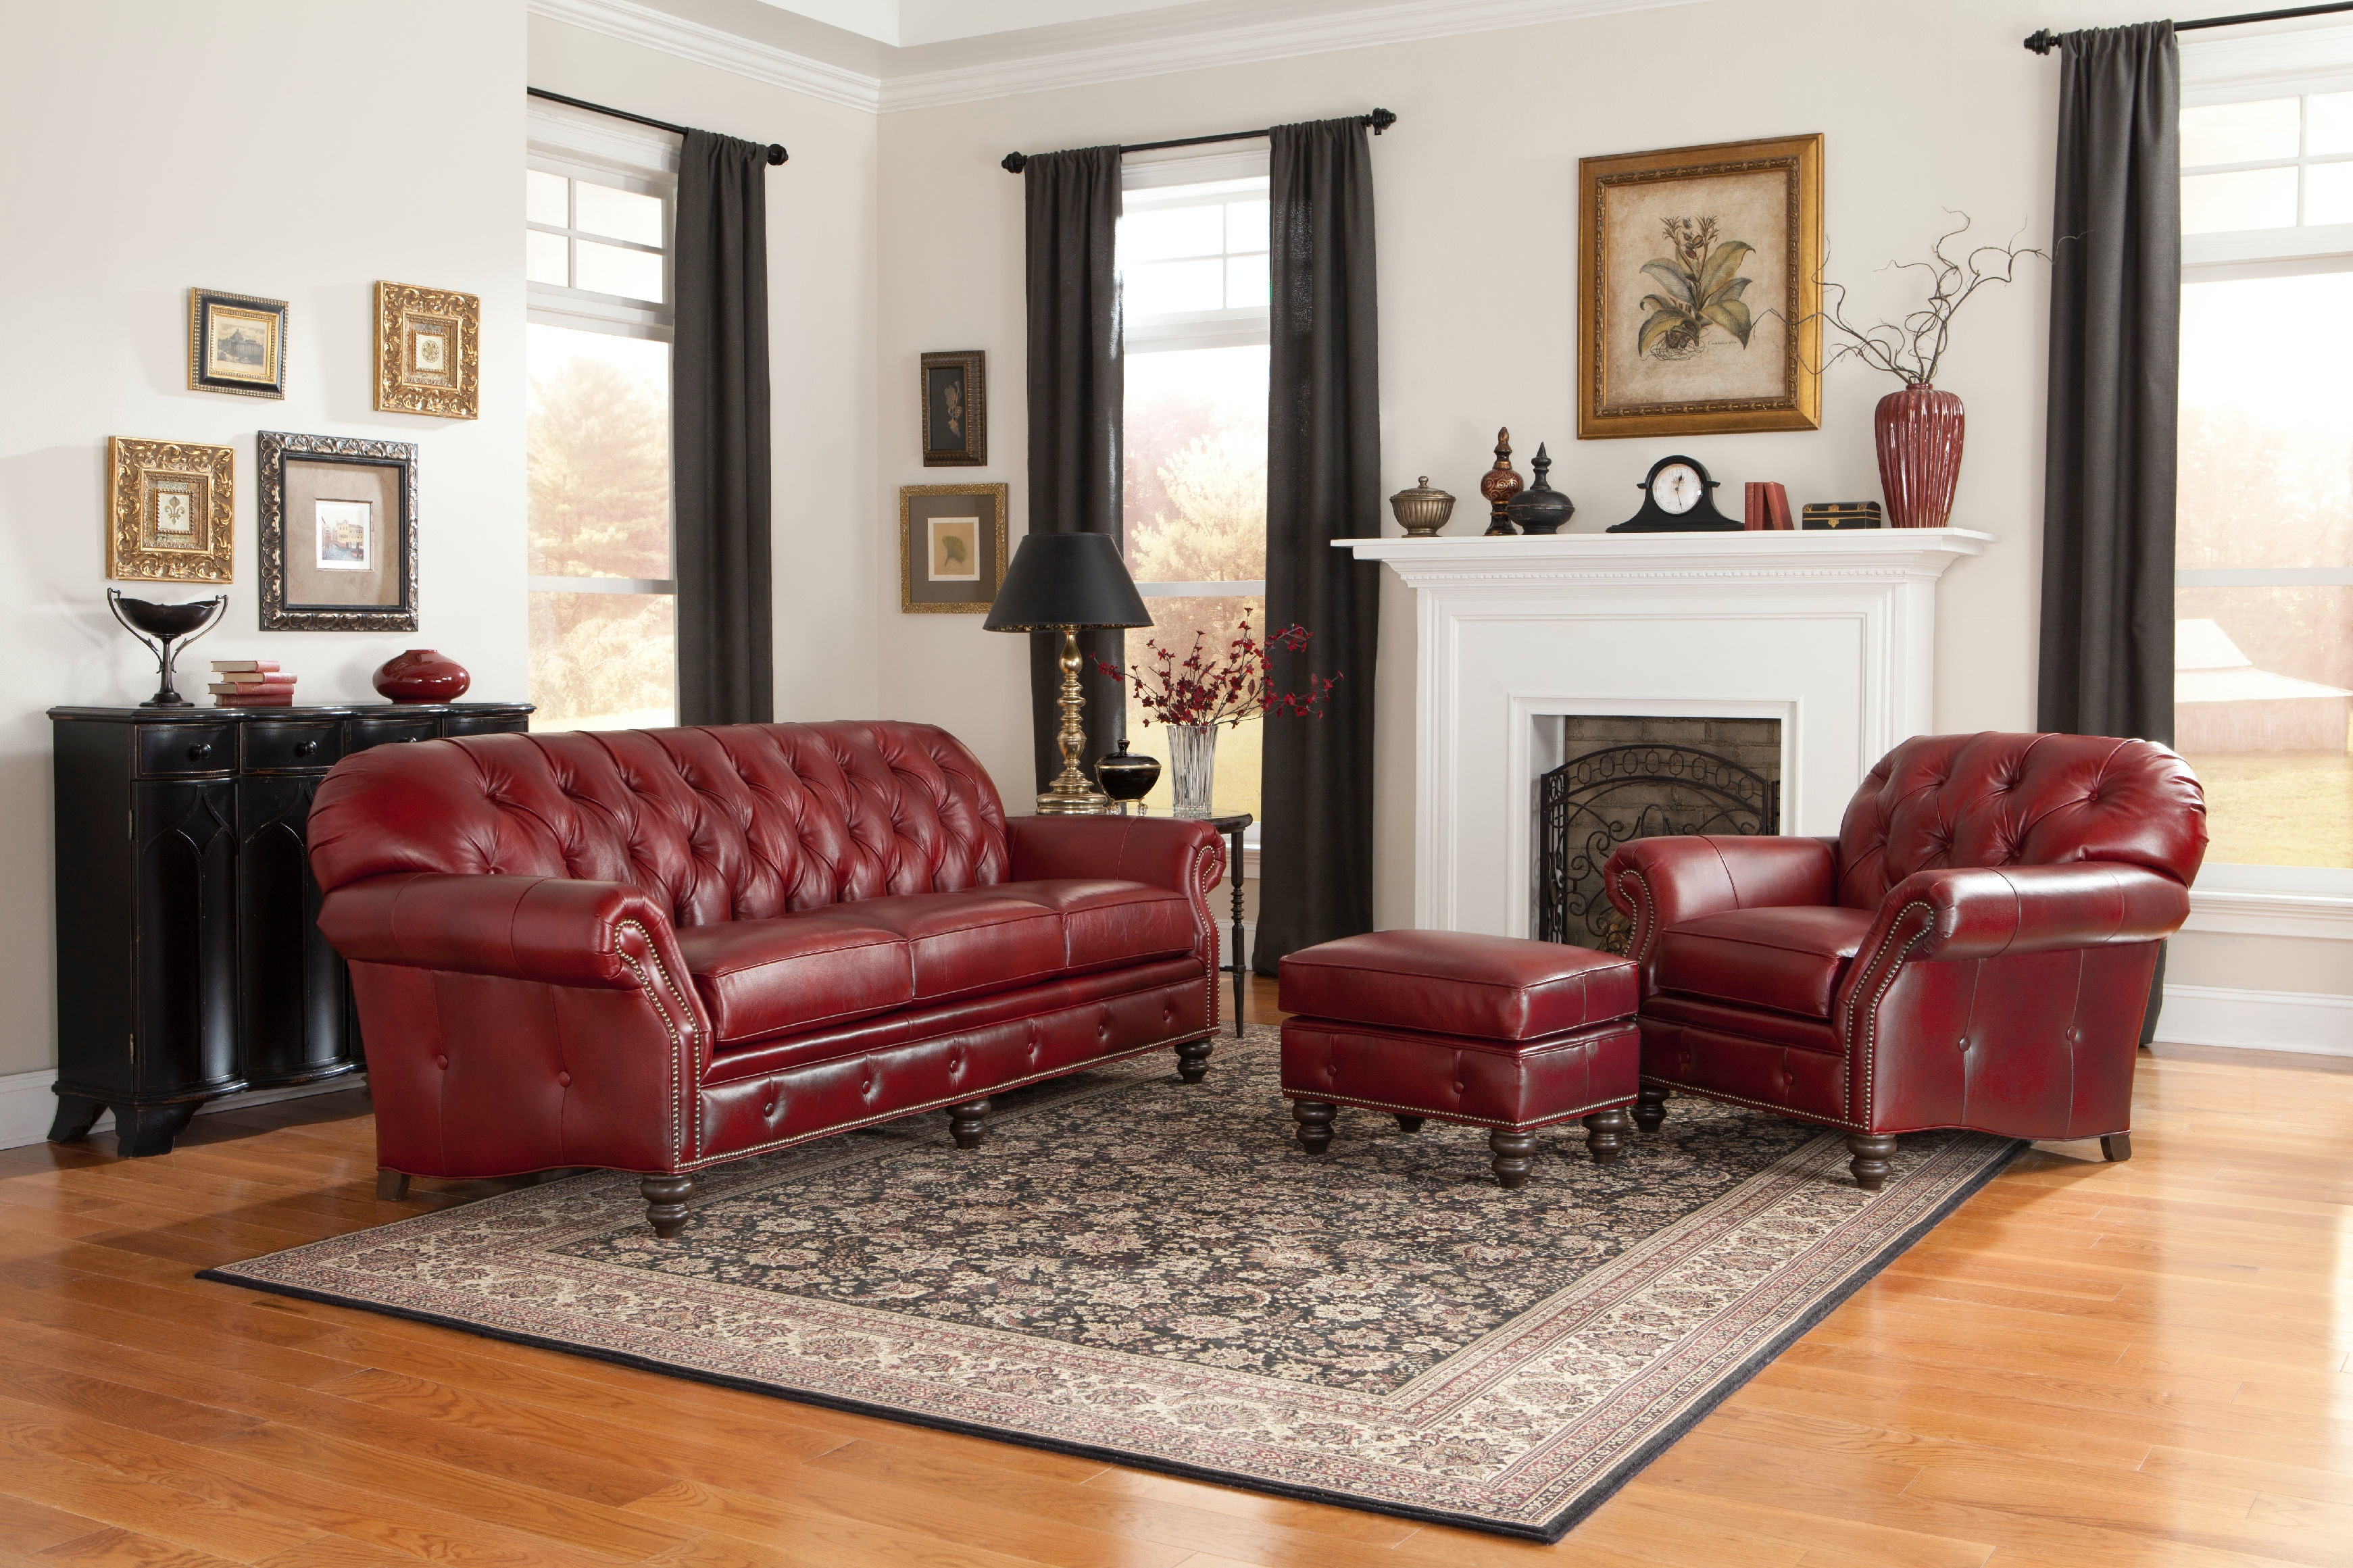 furniture store sofas thomasville reclining full couches sectional size couch cream american of lane leather sofa havertys navy harveys